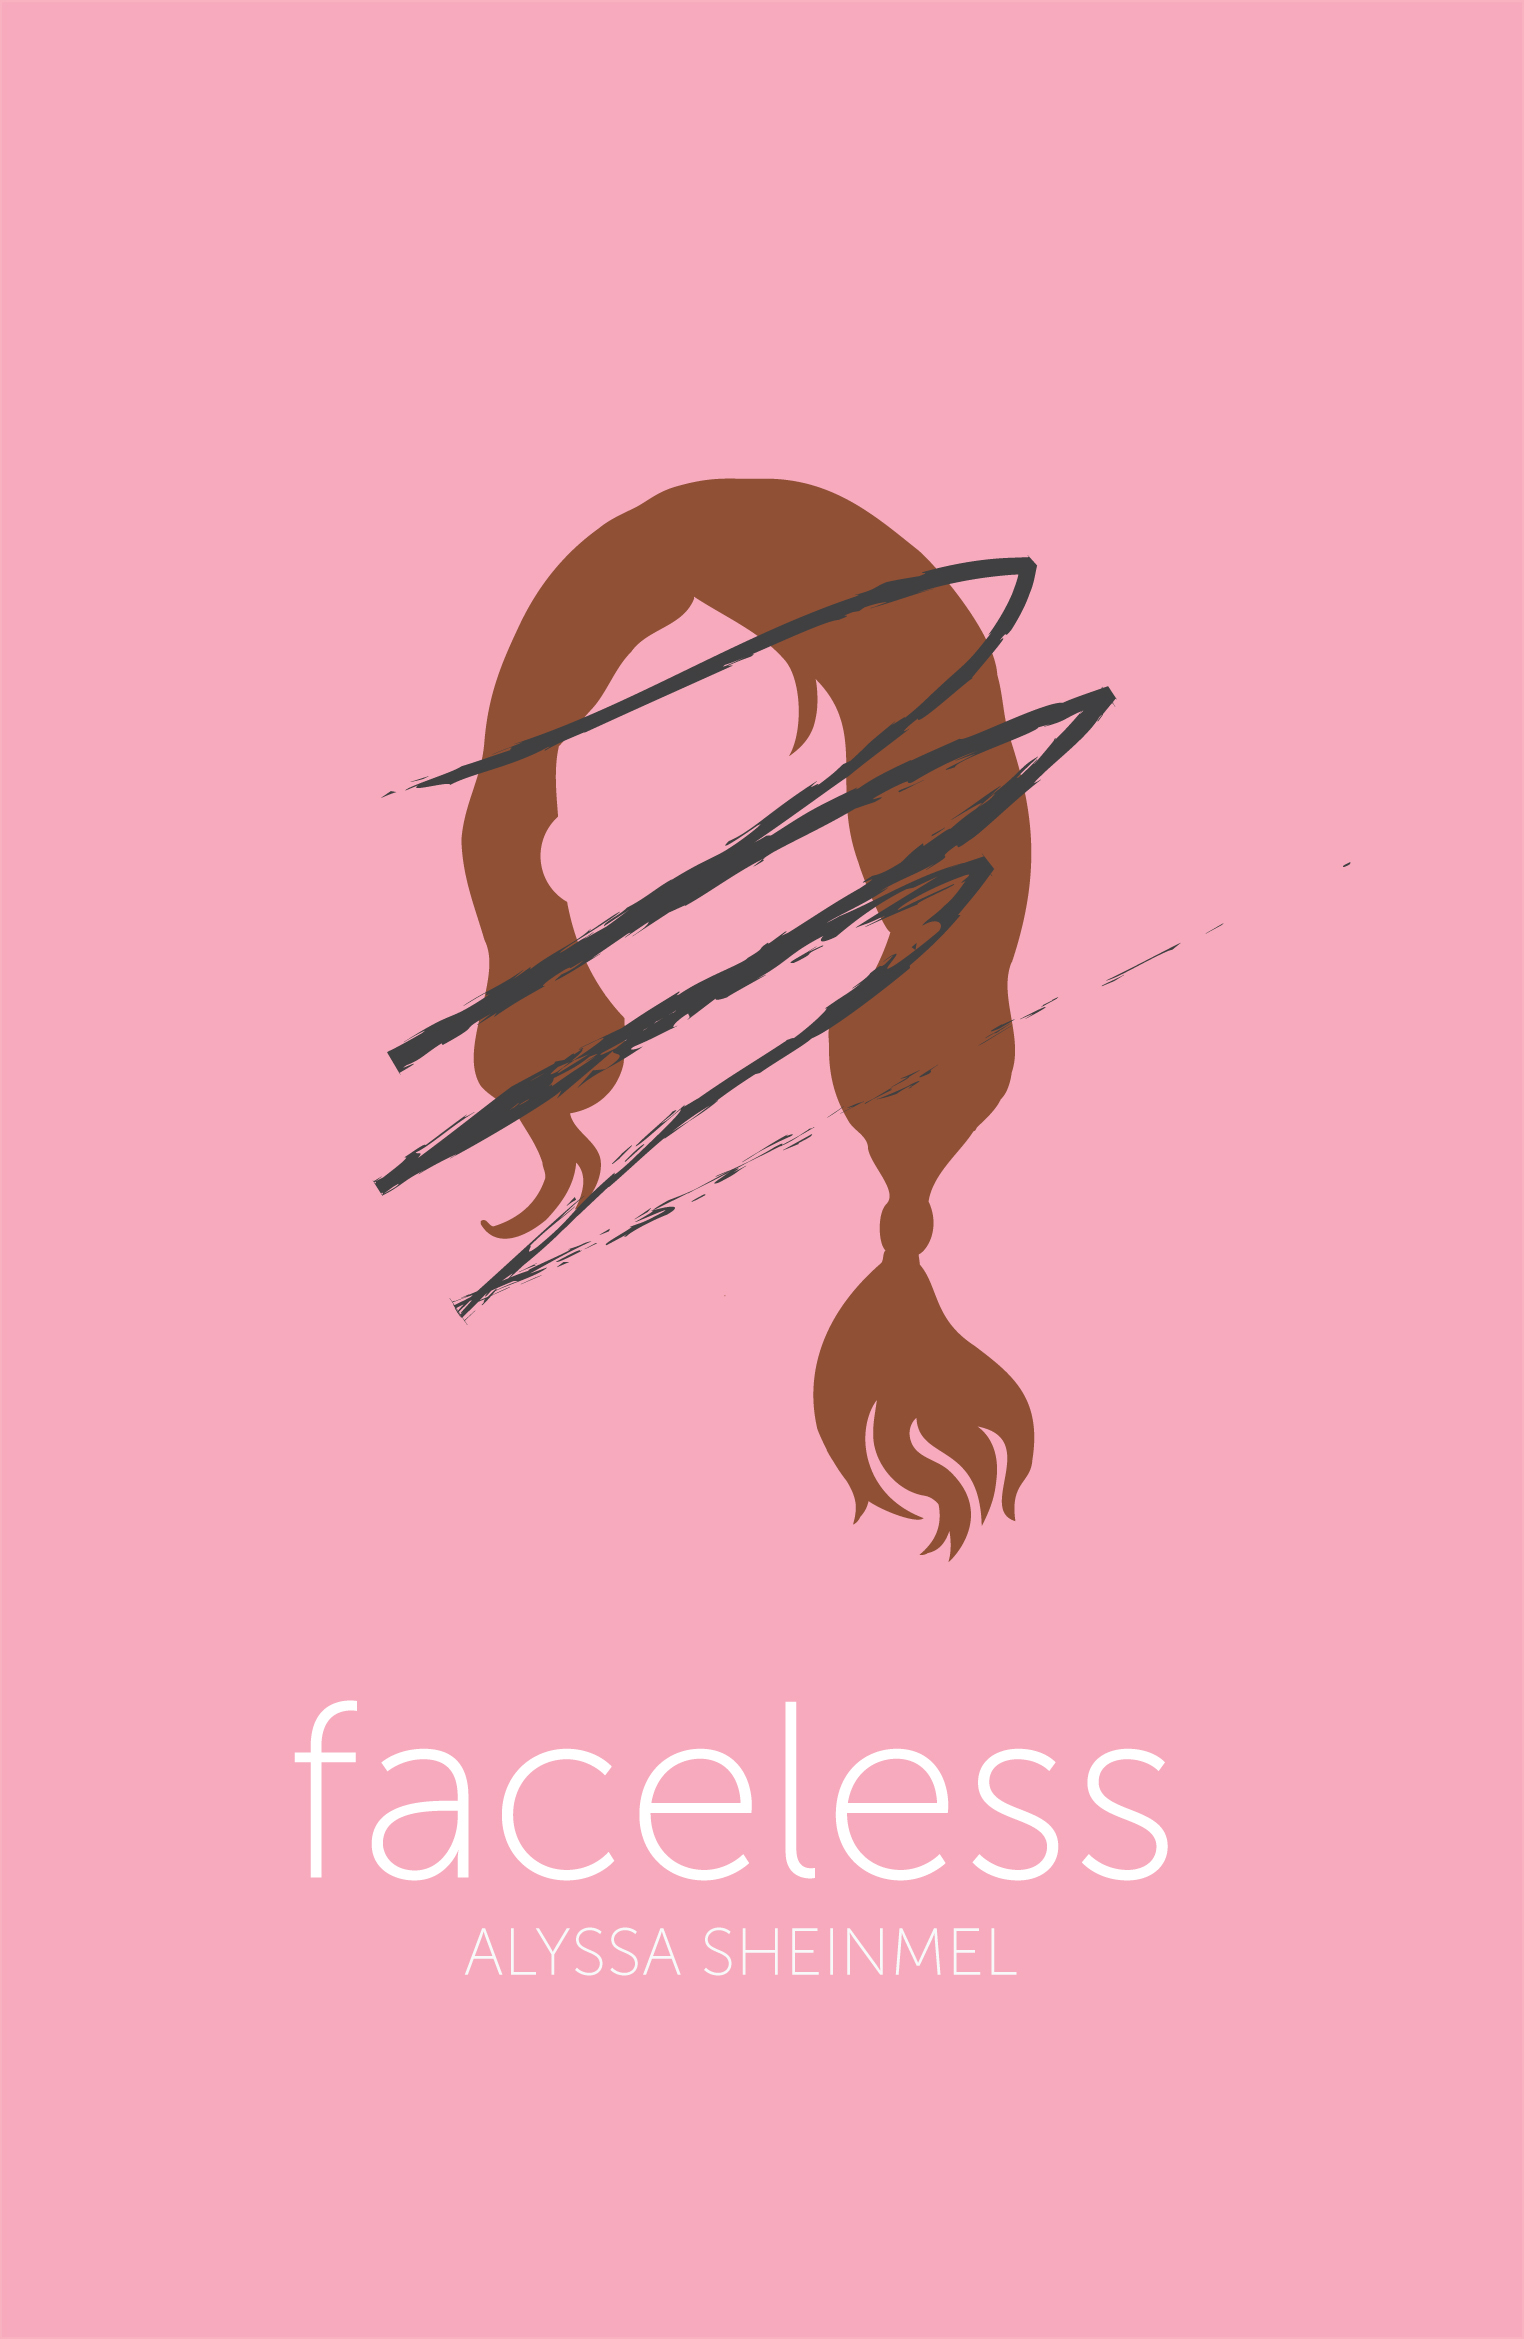 Faceless by Alyssa Shienmel